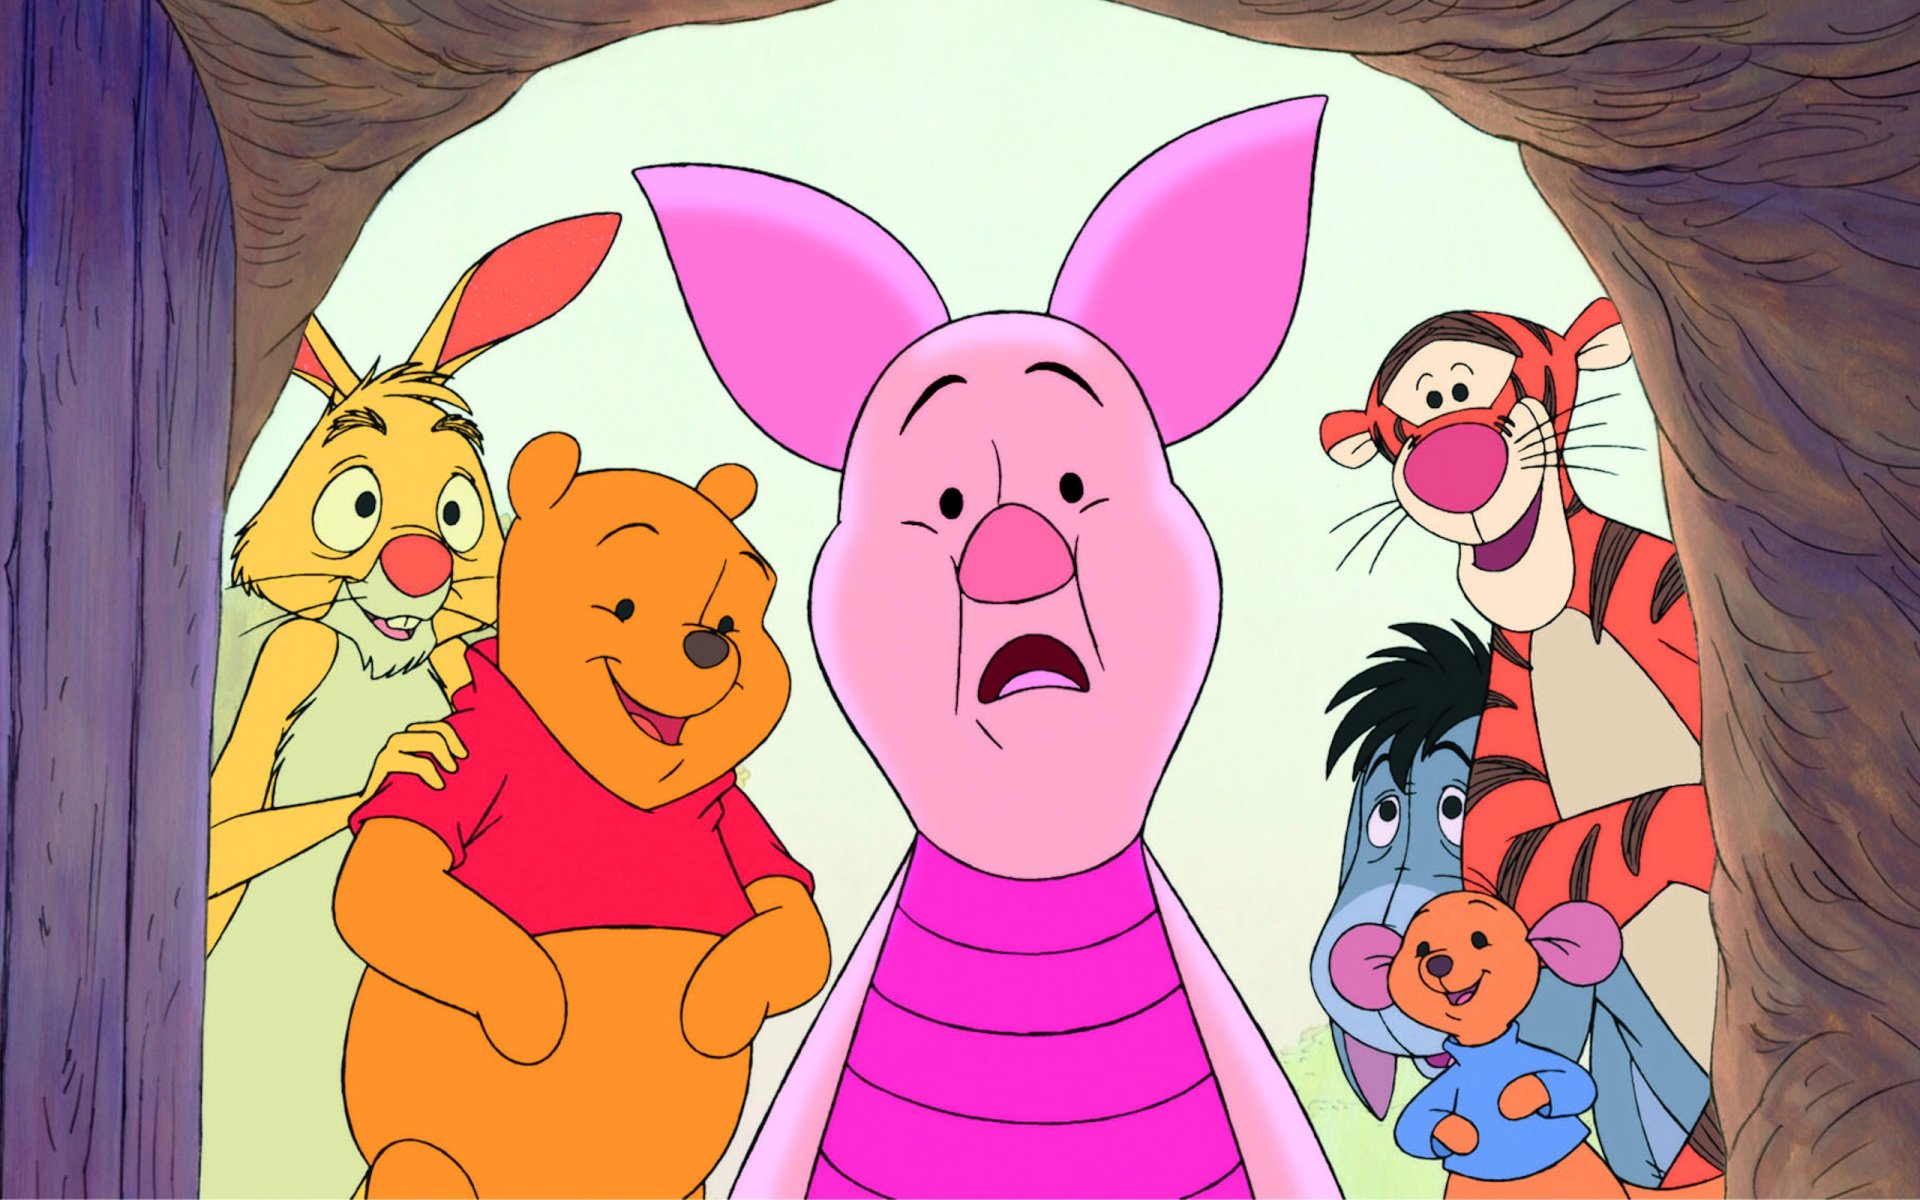 e8a9a94d5fbb Ten Things You May Not Know About Piglet - Celebrations Press